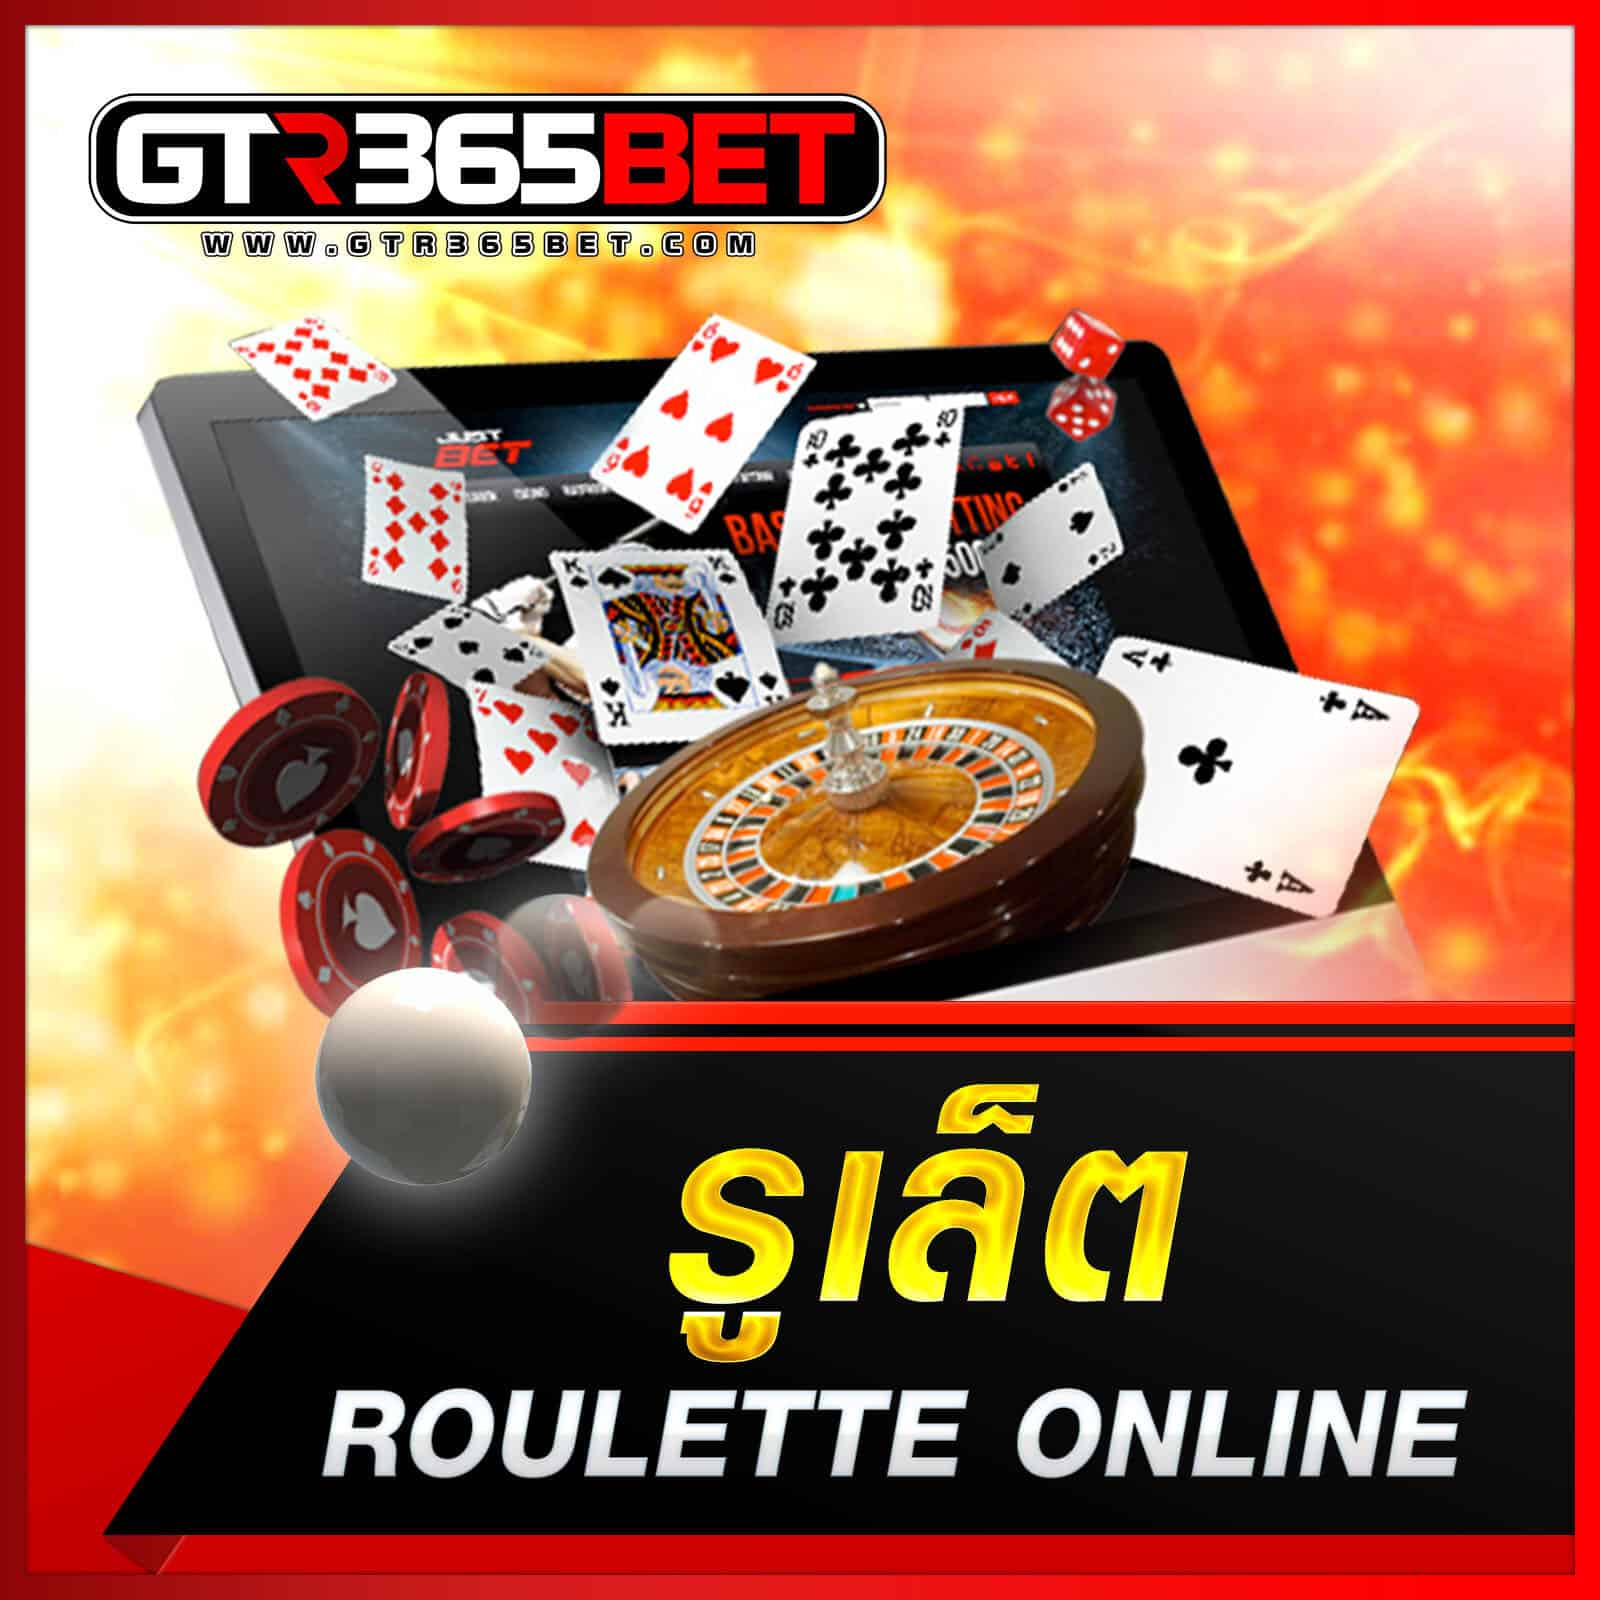 roulette-online-mb